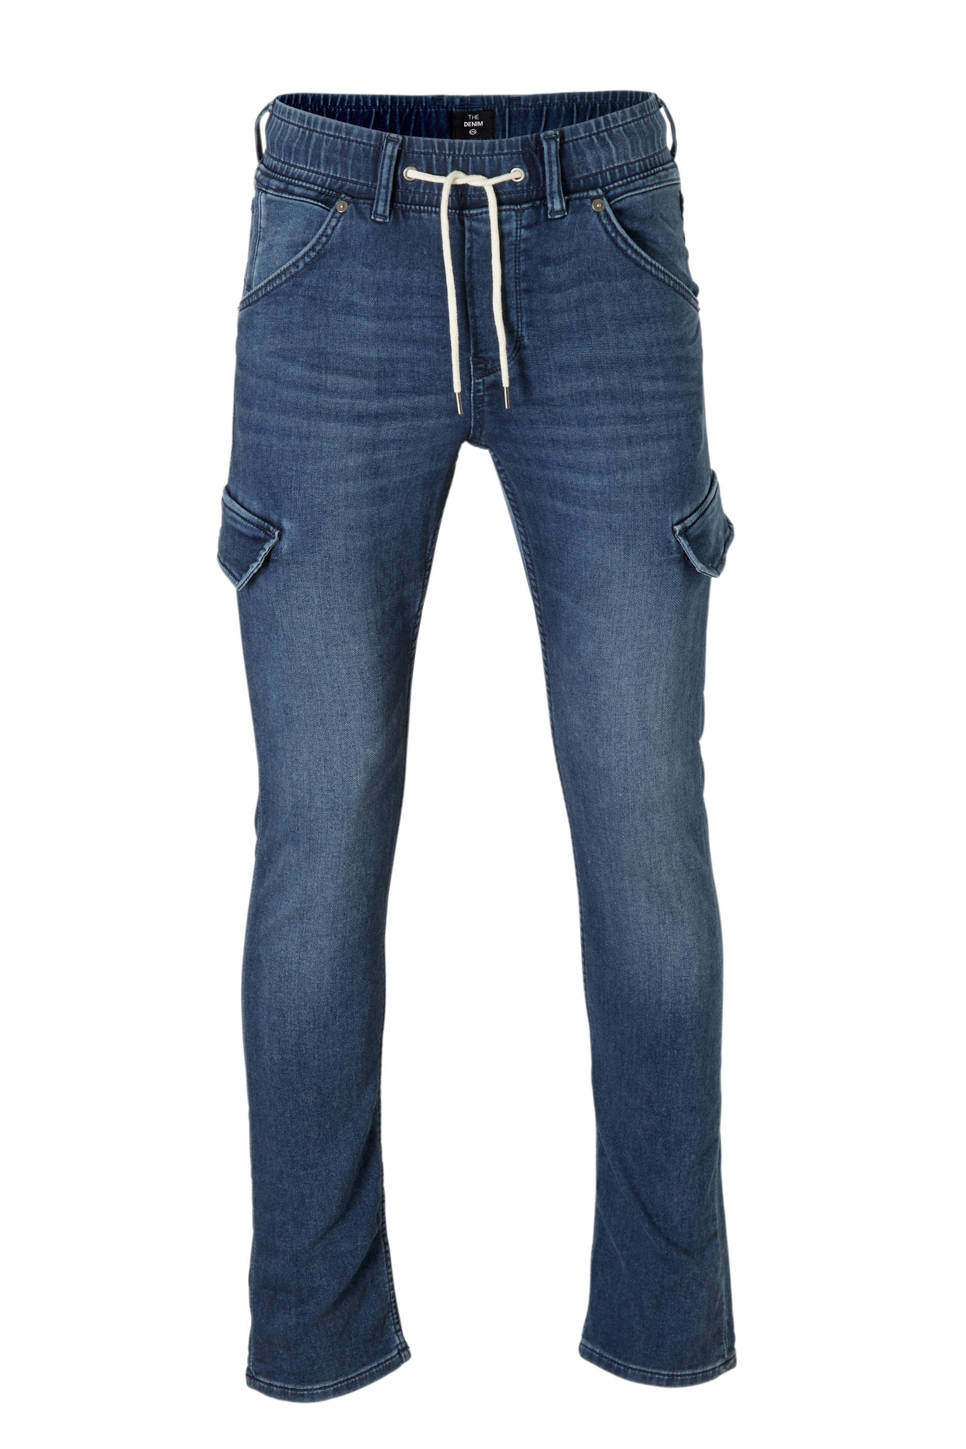 C&A The Denim slim fit cargo jog denim dark denim, Donkerblauw